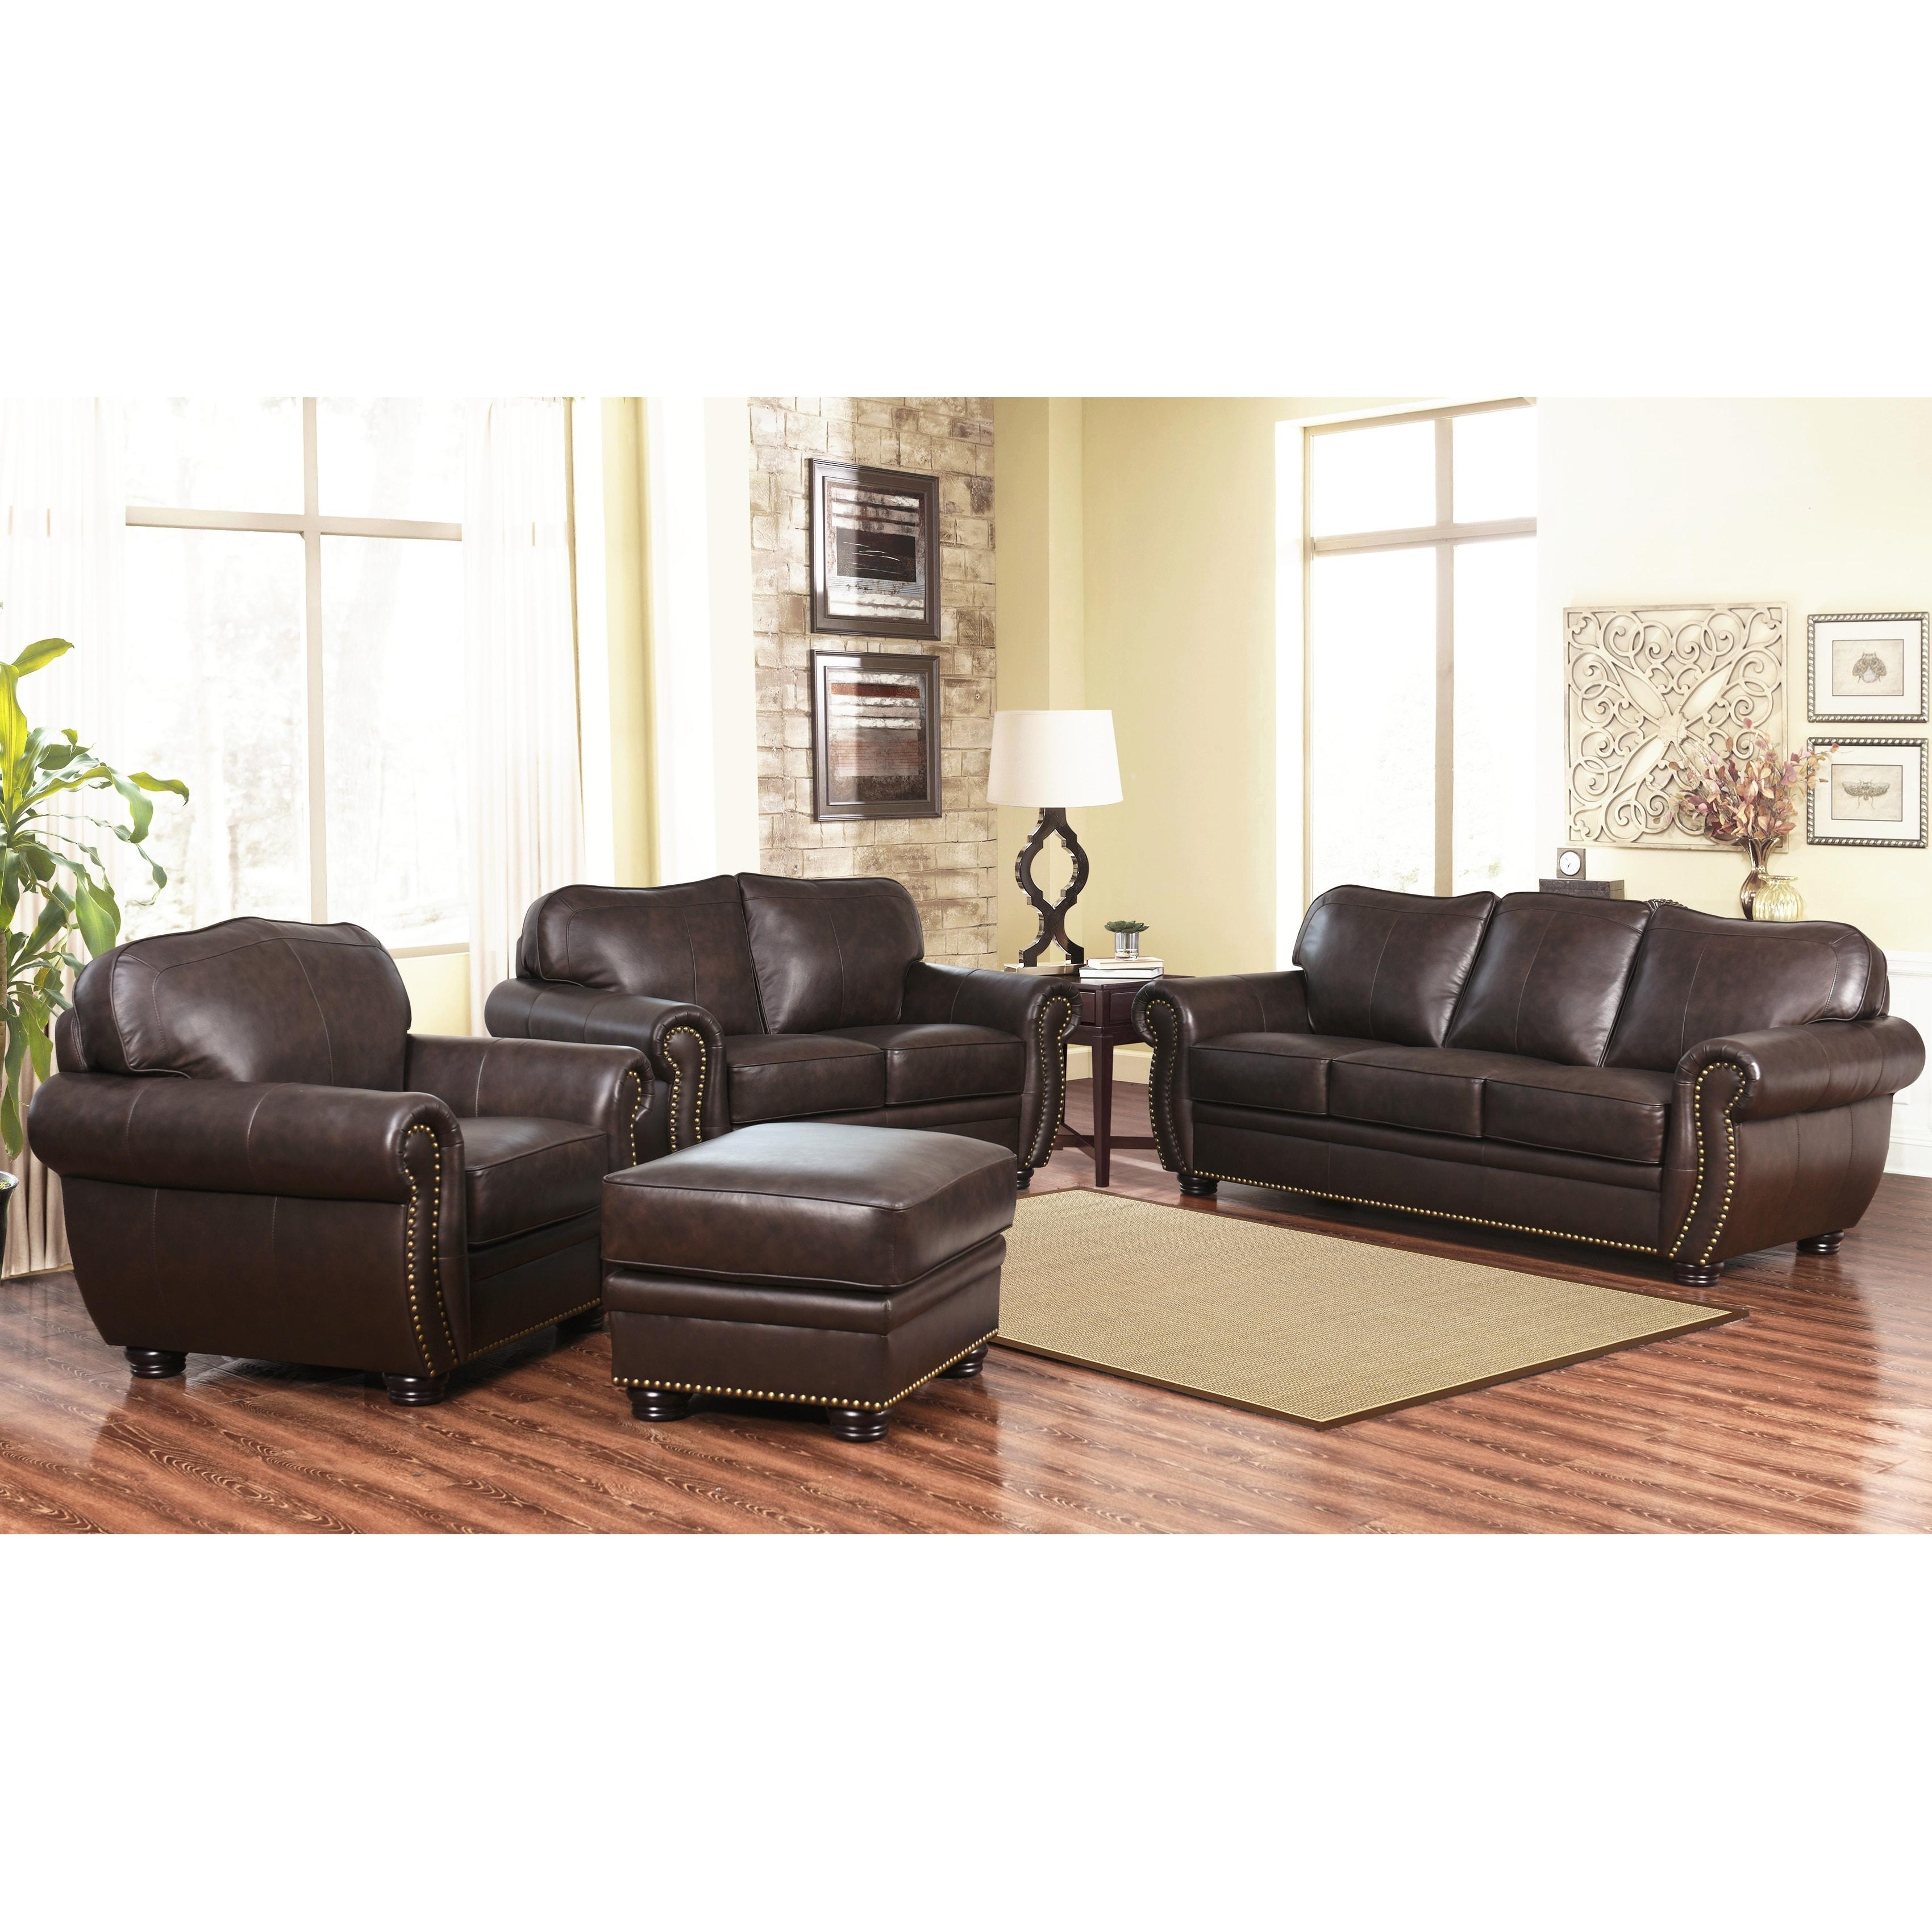 Furniture : Craigslist Sofa And Loveseat Luxury Inspirational For Craigslist Leather Sofas (Image 4 of 10)